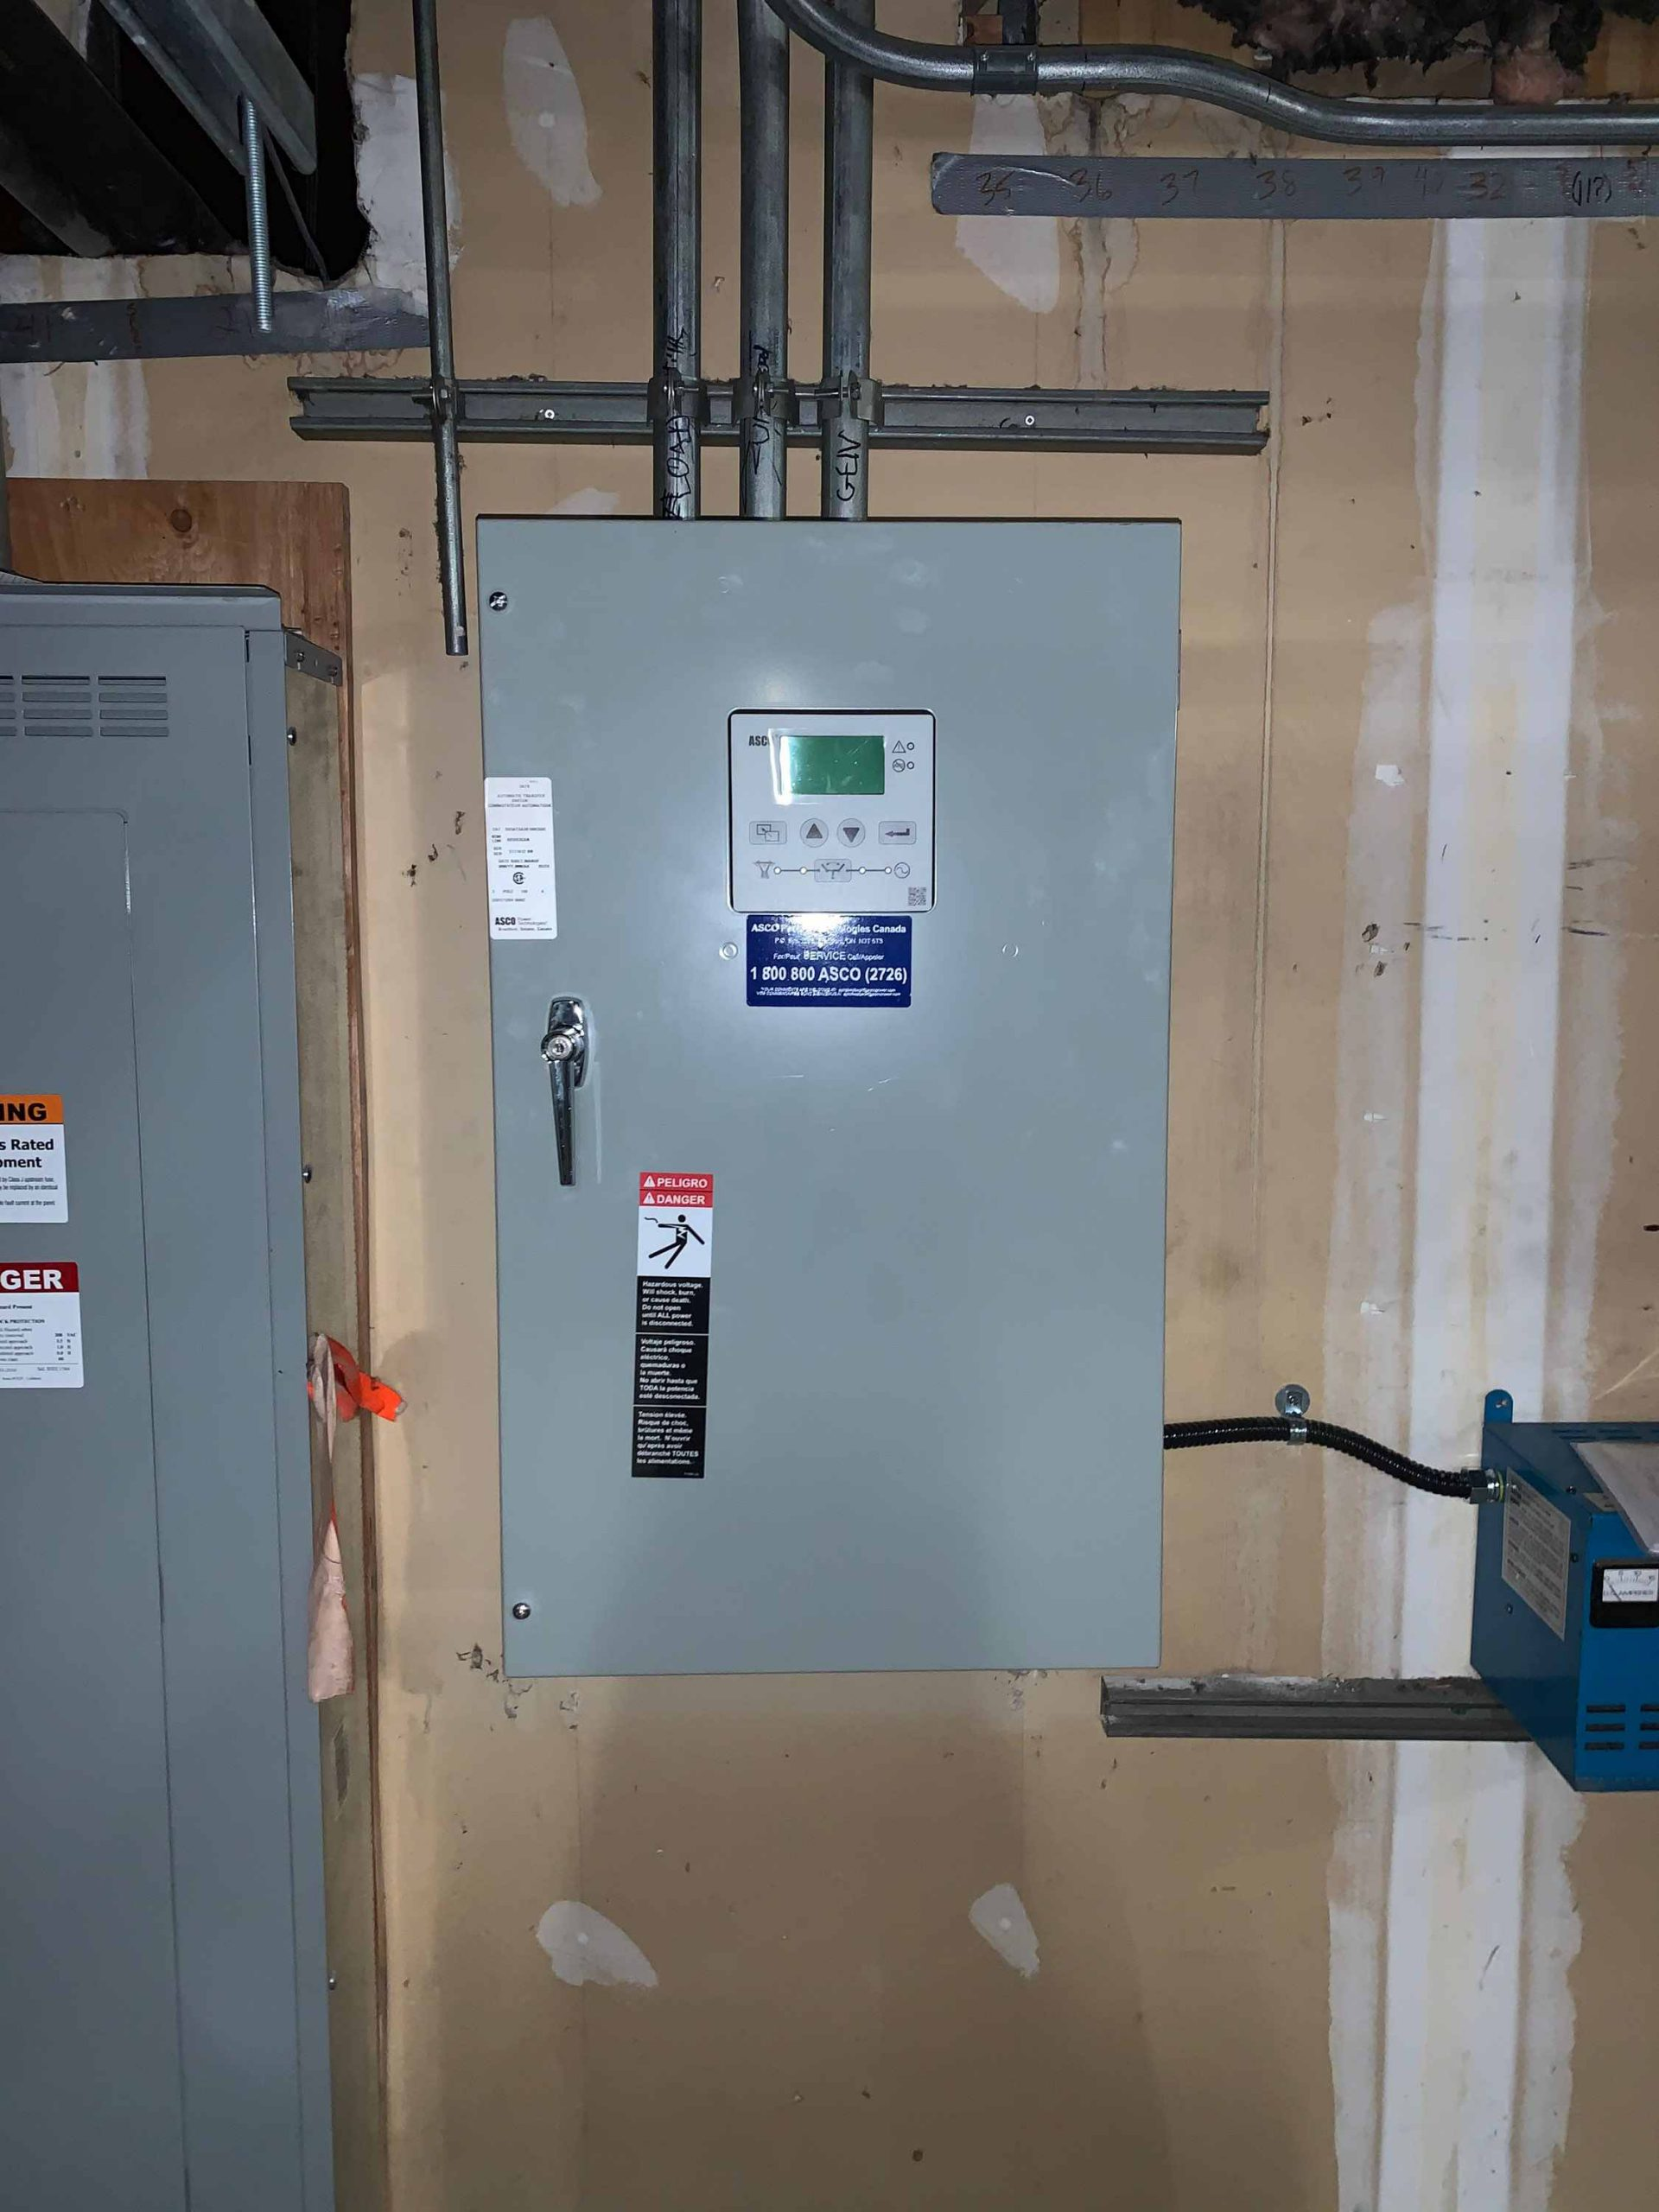 100A Automatic transfer switch